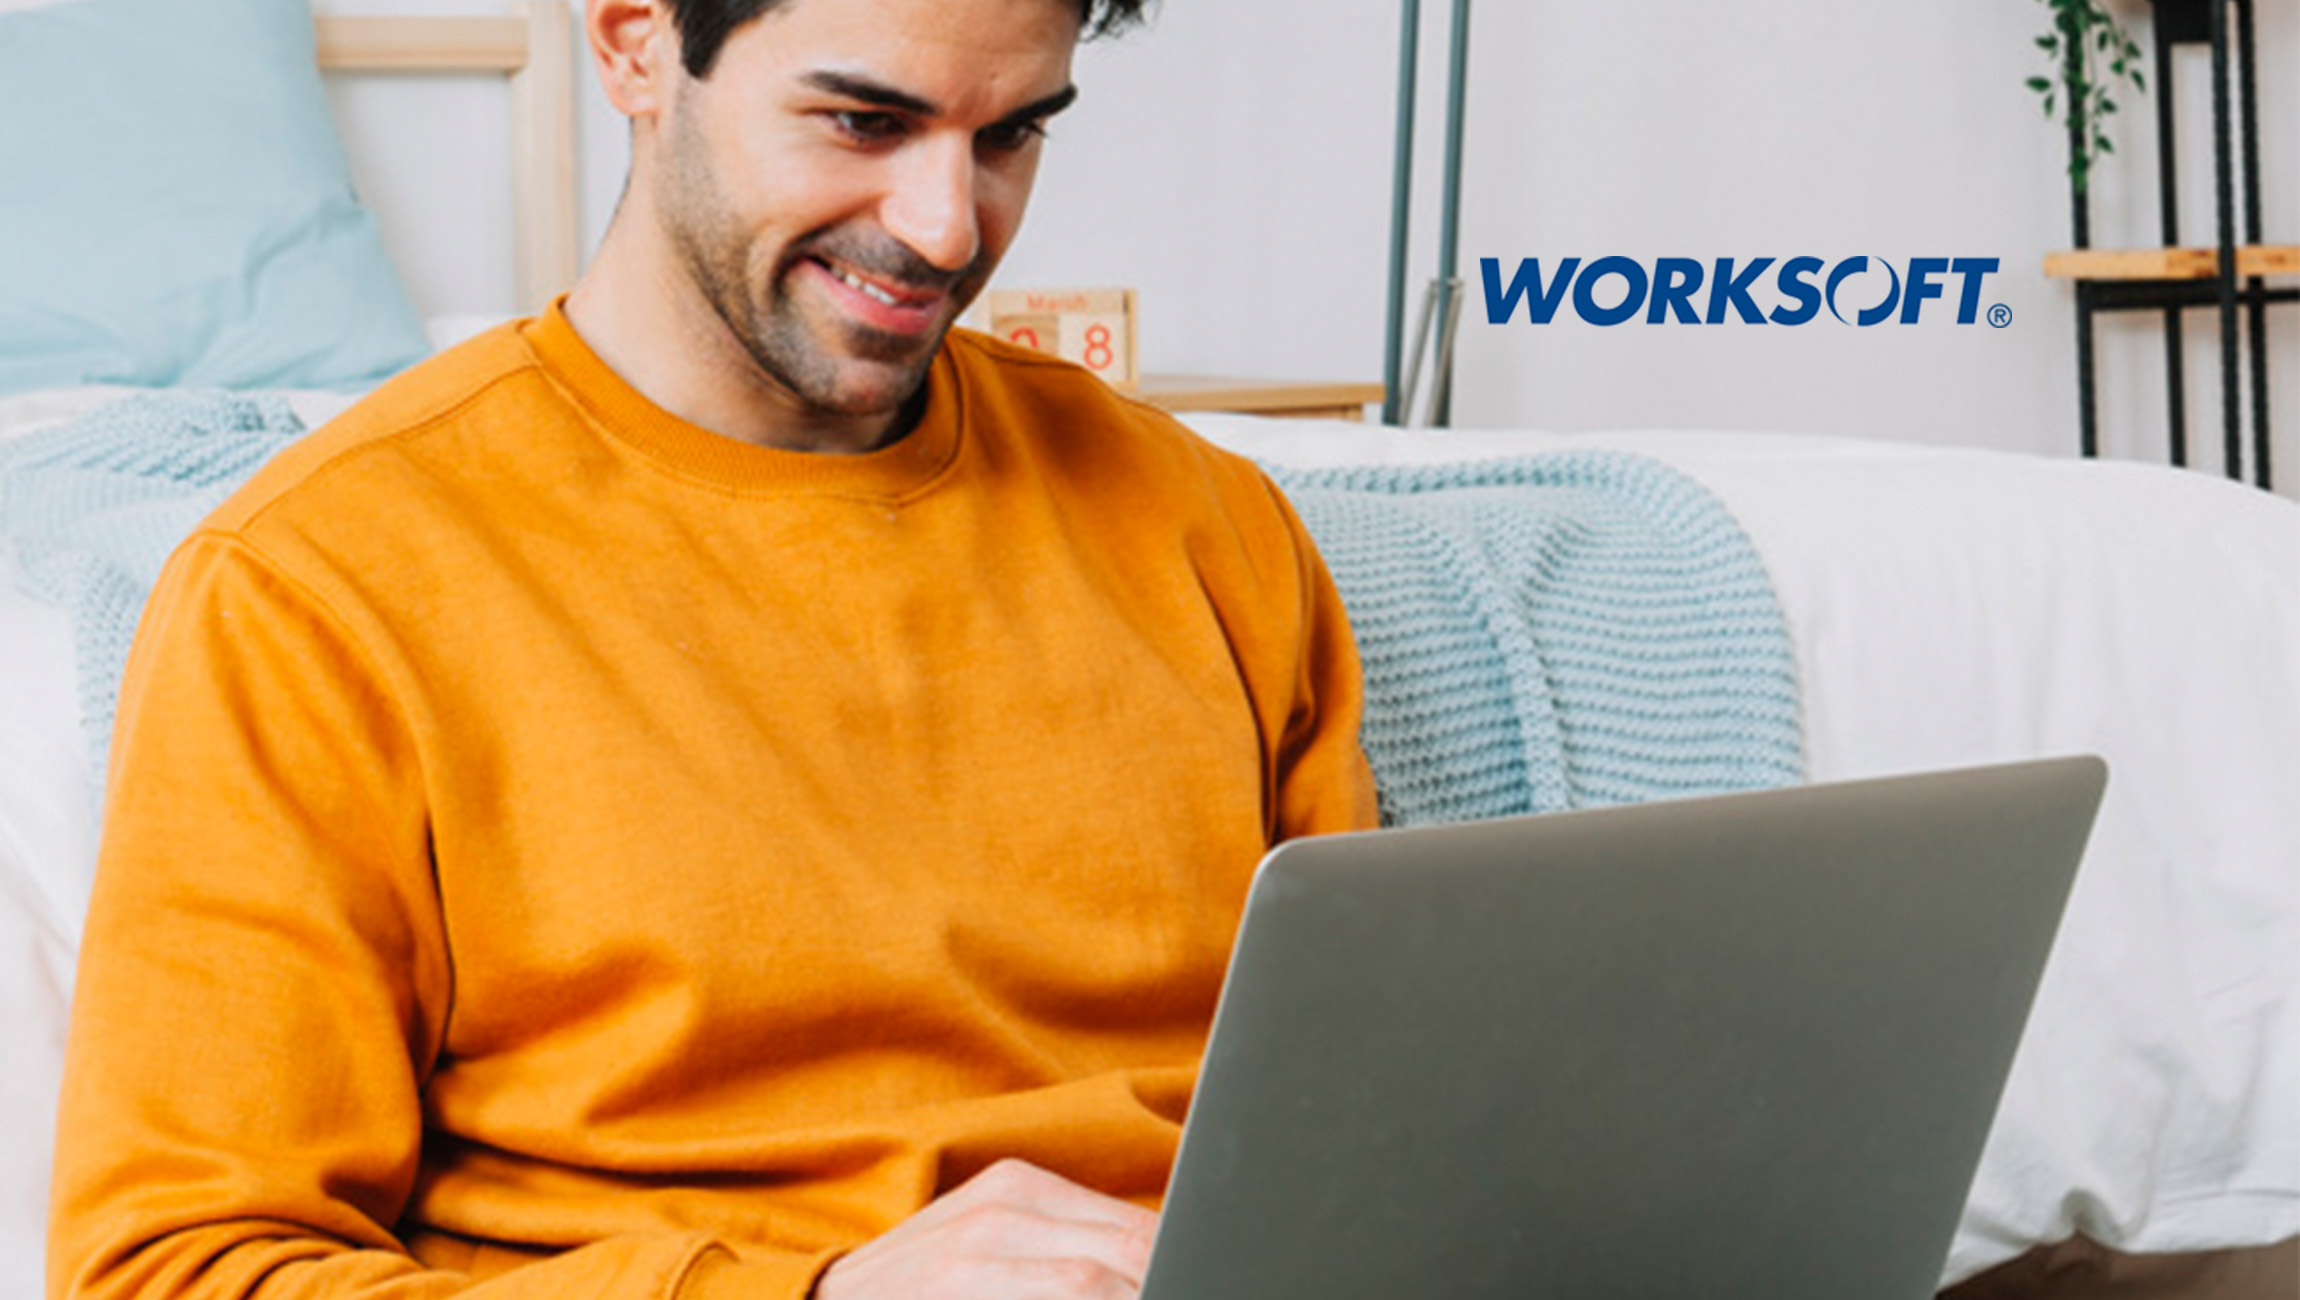 Worksoft Sees Major Shift to SAP® S/4HANA